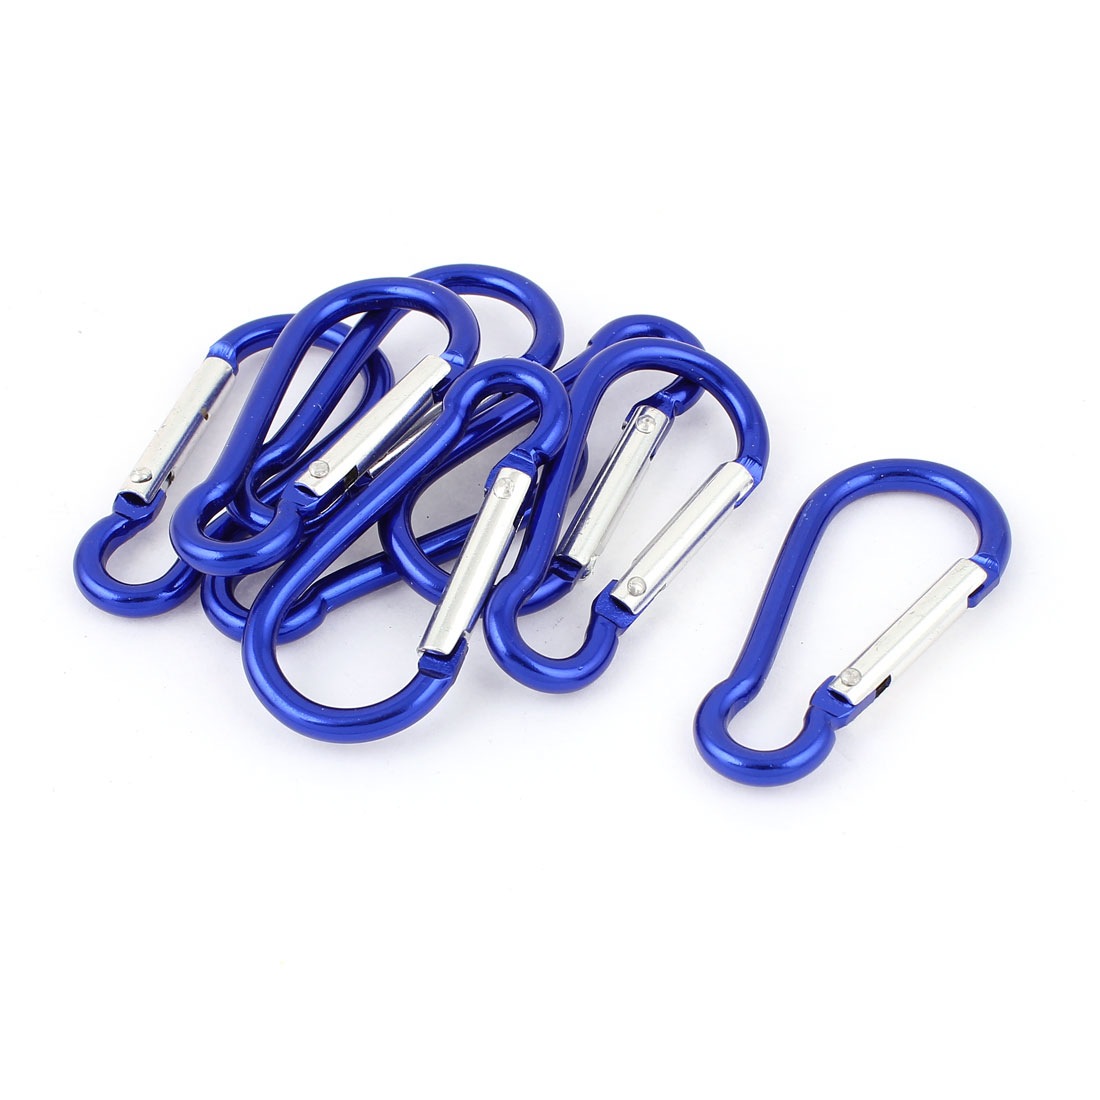 Cycling Hiking Spring Clip Snap Carabiner Hook Keychain Karabiner Bag Holder 8pcs Blue